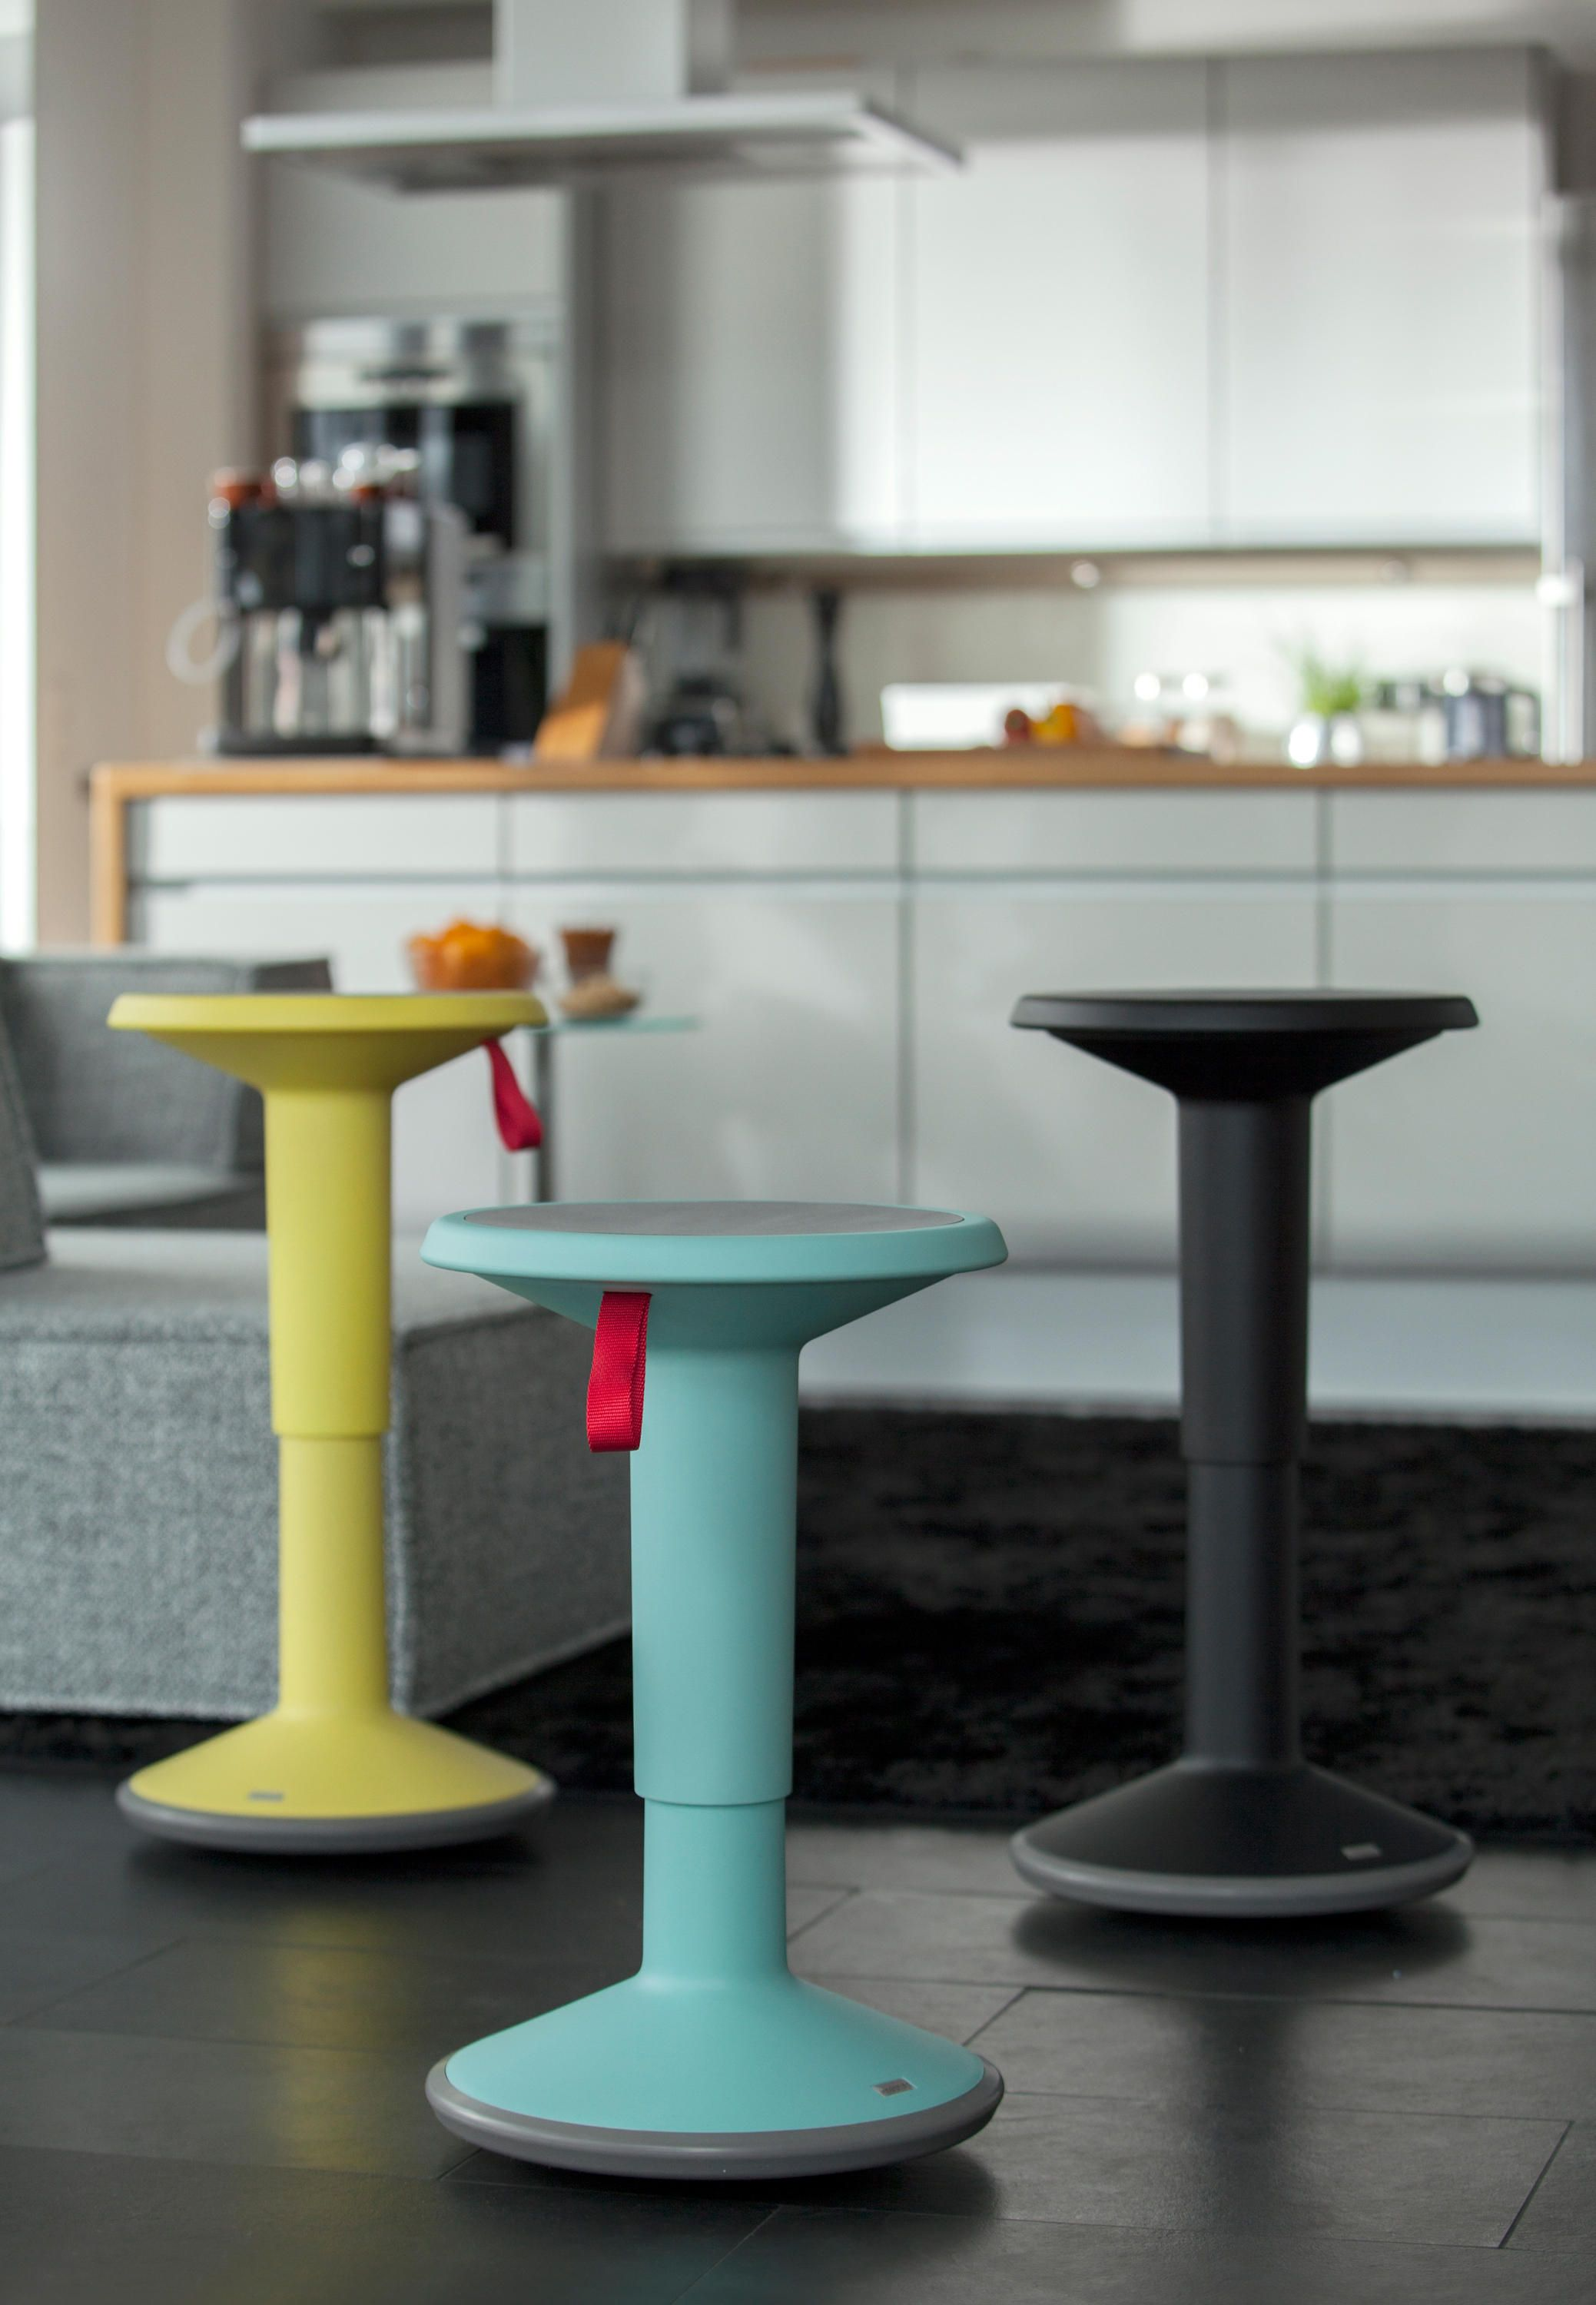 UPIS1 STOOL - Designer Swivel stools from Interstuhl Büromöbel GmbH ...